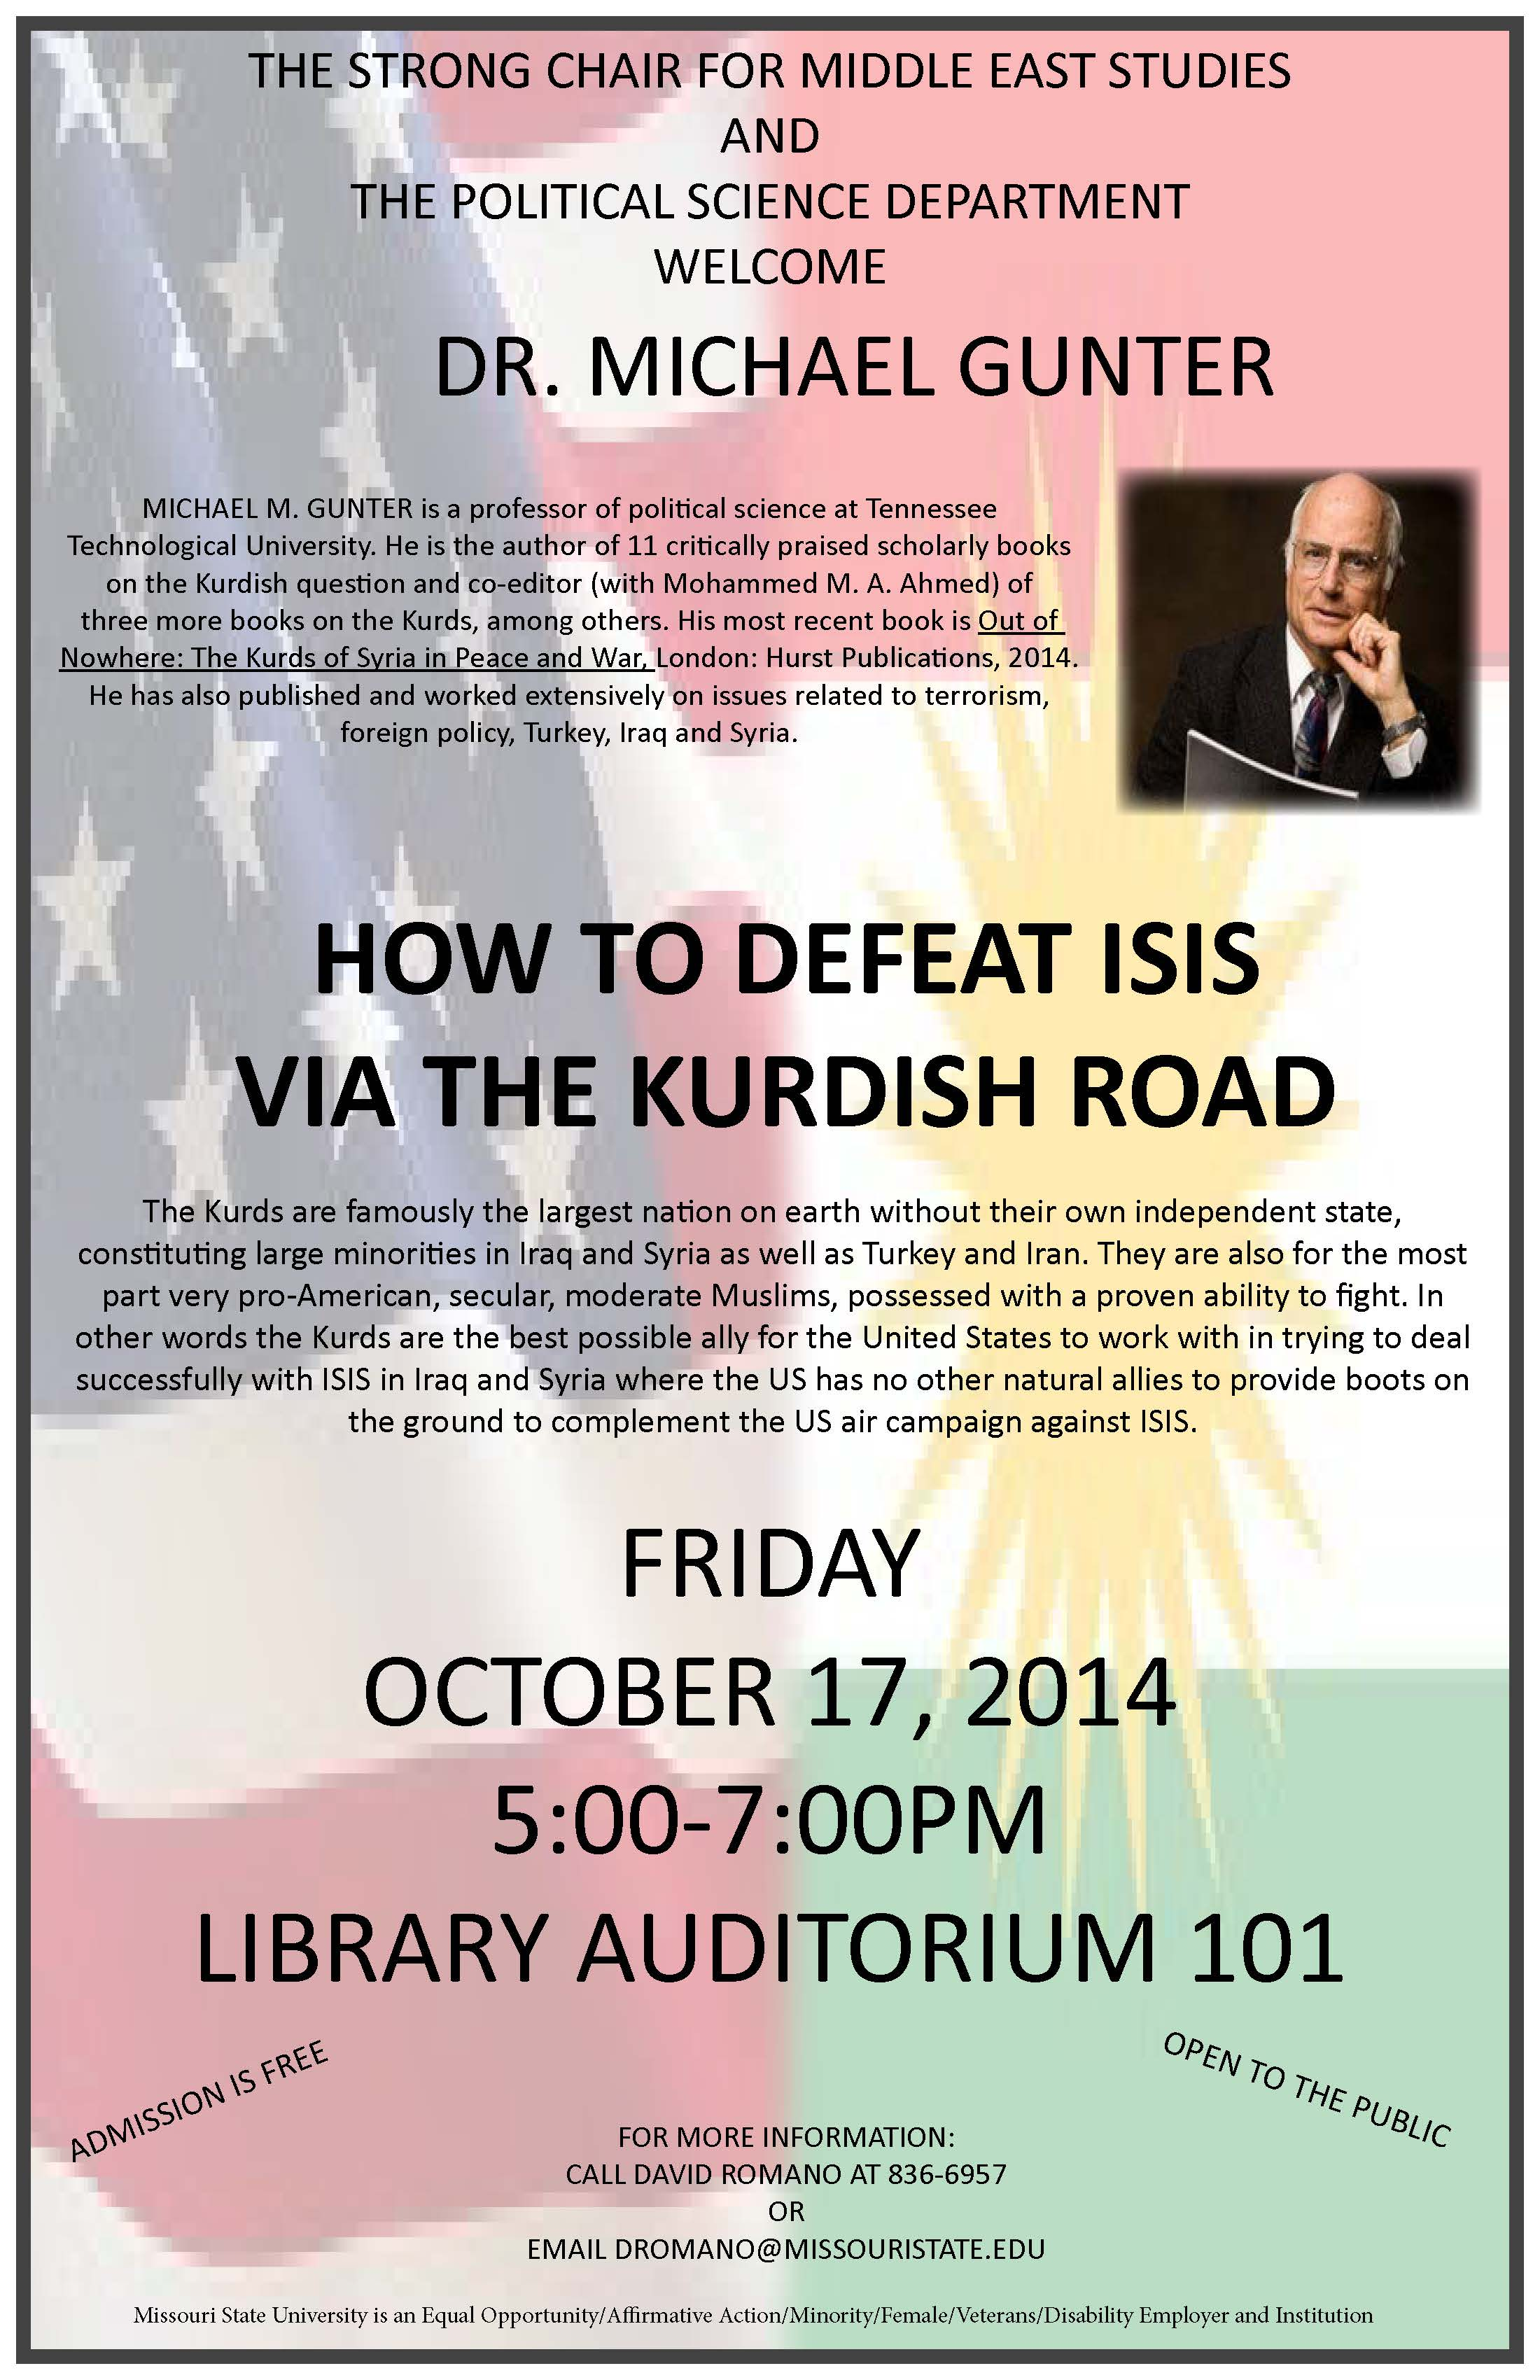 Presentation: How to defeat ISIS via the Kurdish Road